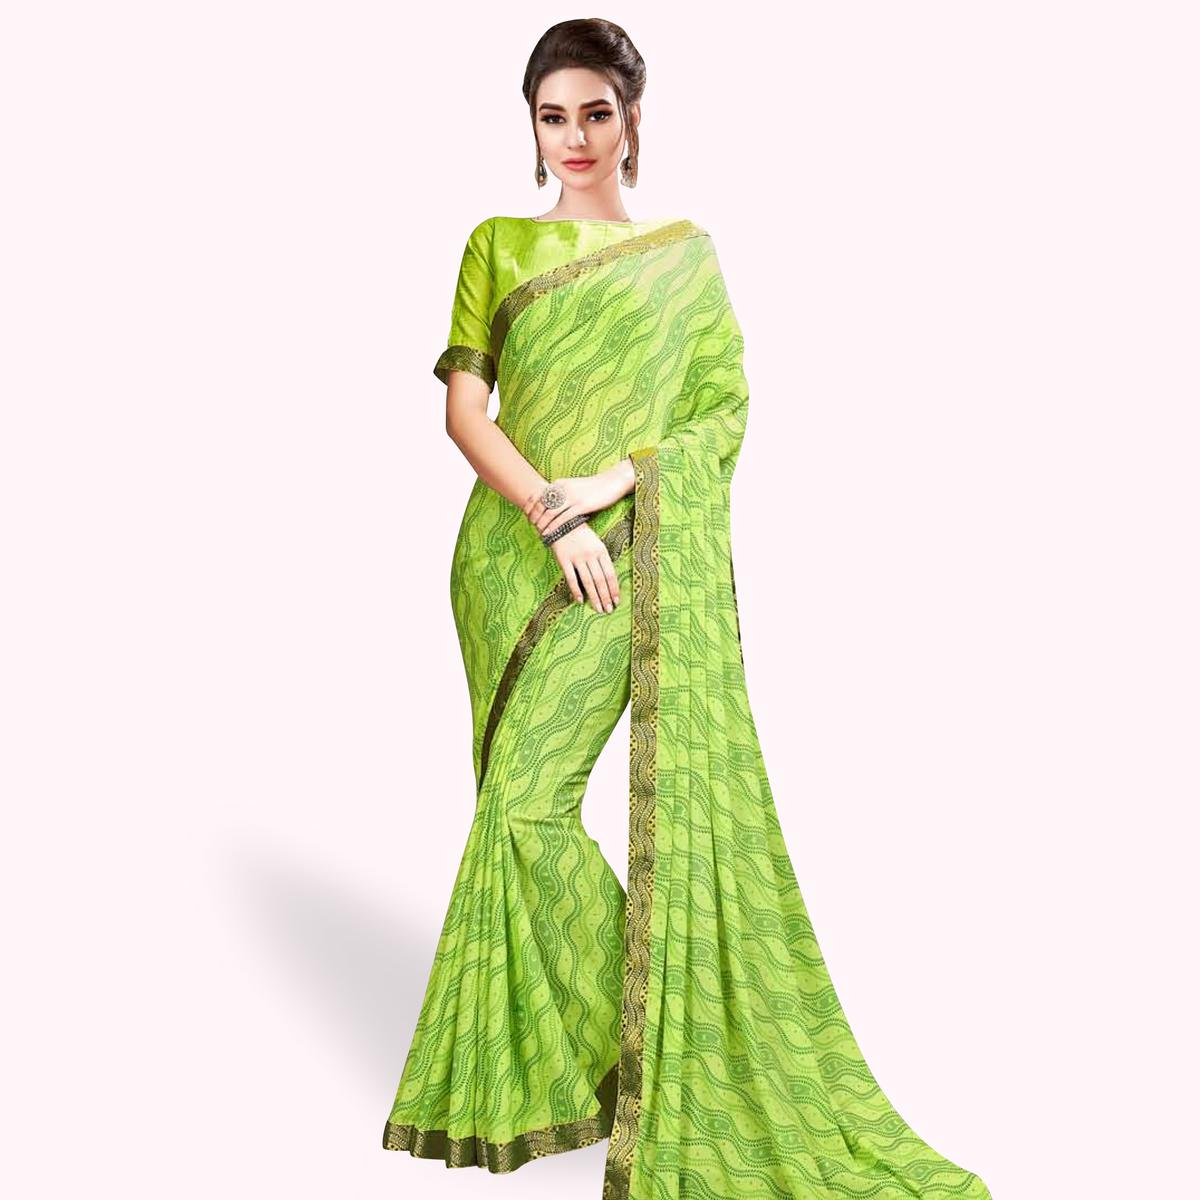 Sophisticated Light Green Colored Casual Wear Printed Georgette Saree With Jacquard Lace Border